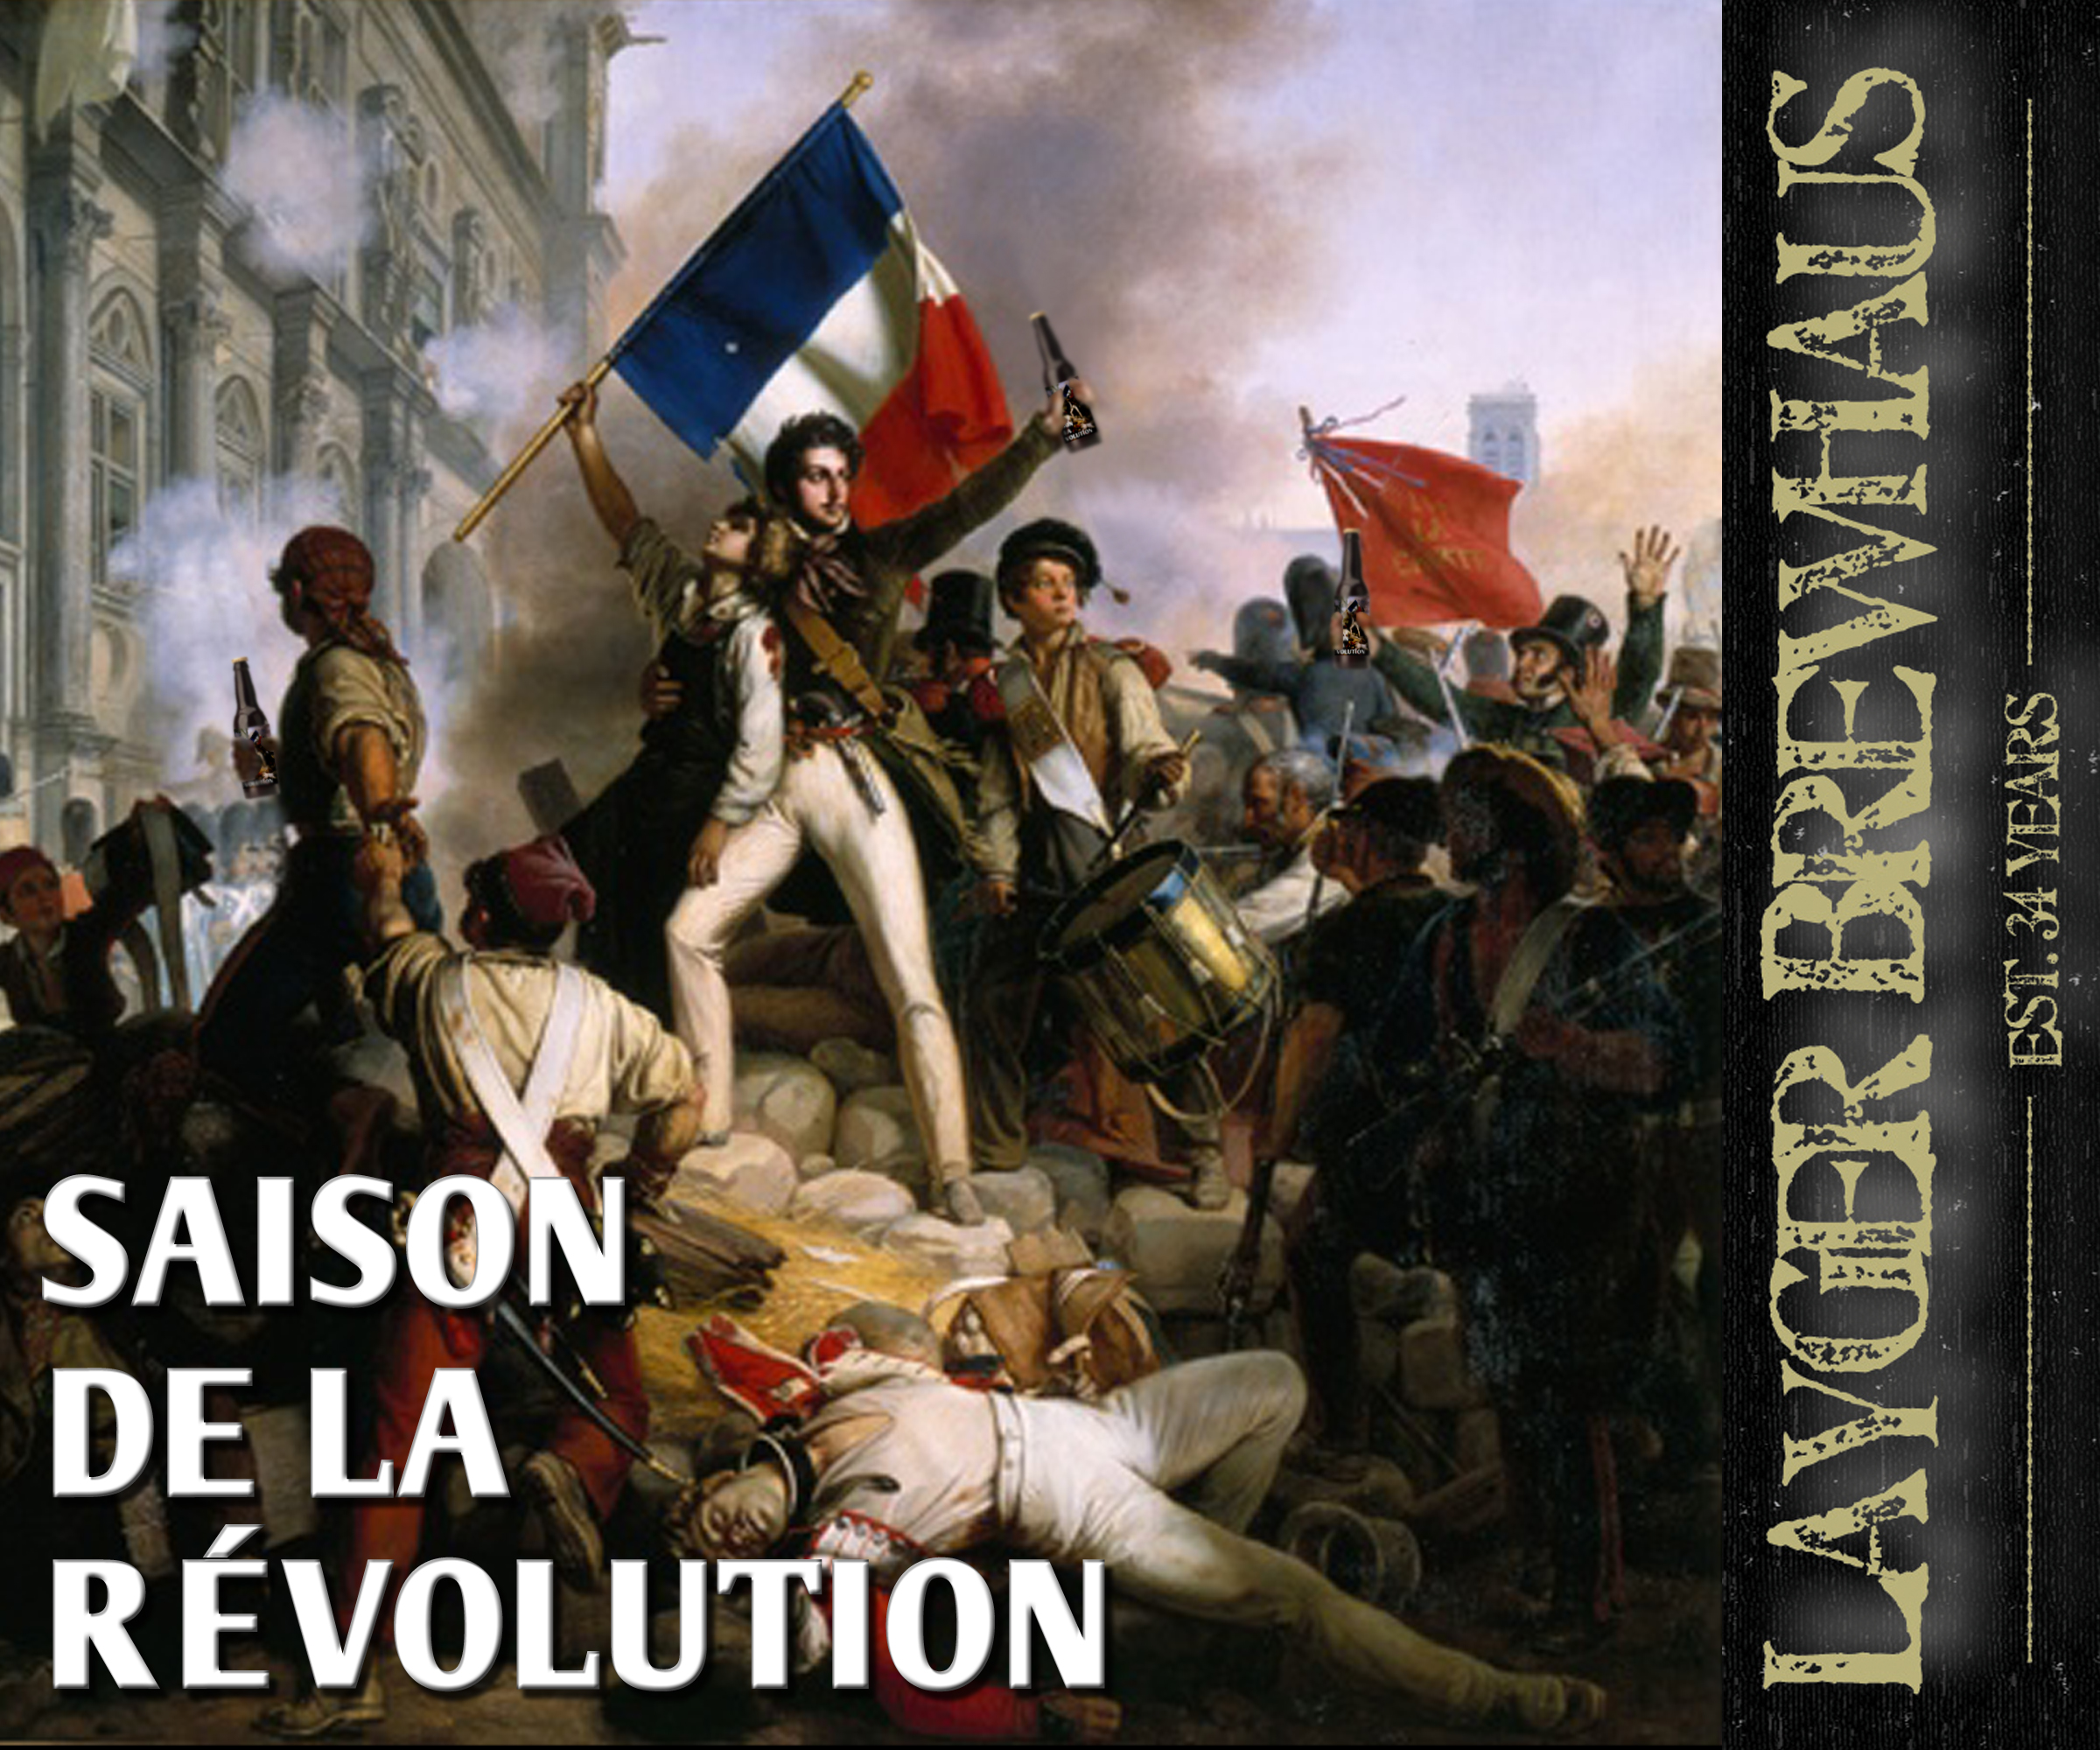 french revolution and nationalism The french revolution put nationalism on the political map pre-revolutionary france was a complicated and very illogical place without common laws or institutions of government in theory the king was the source of all law and administrative authority reigning by the grace of god.